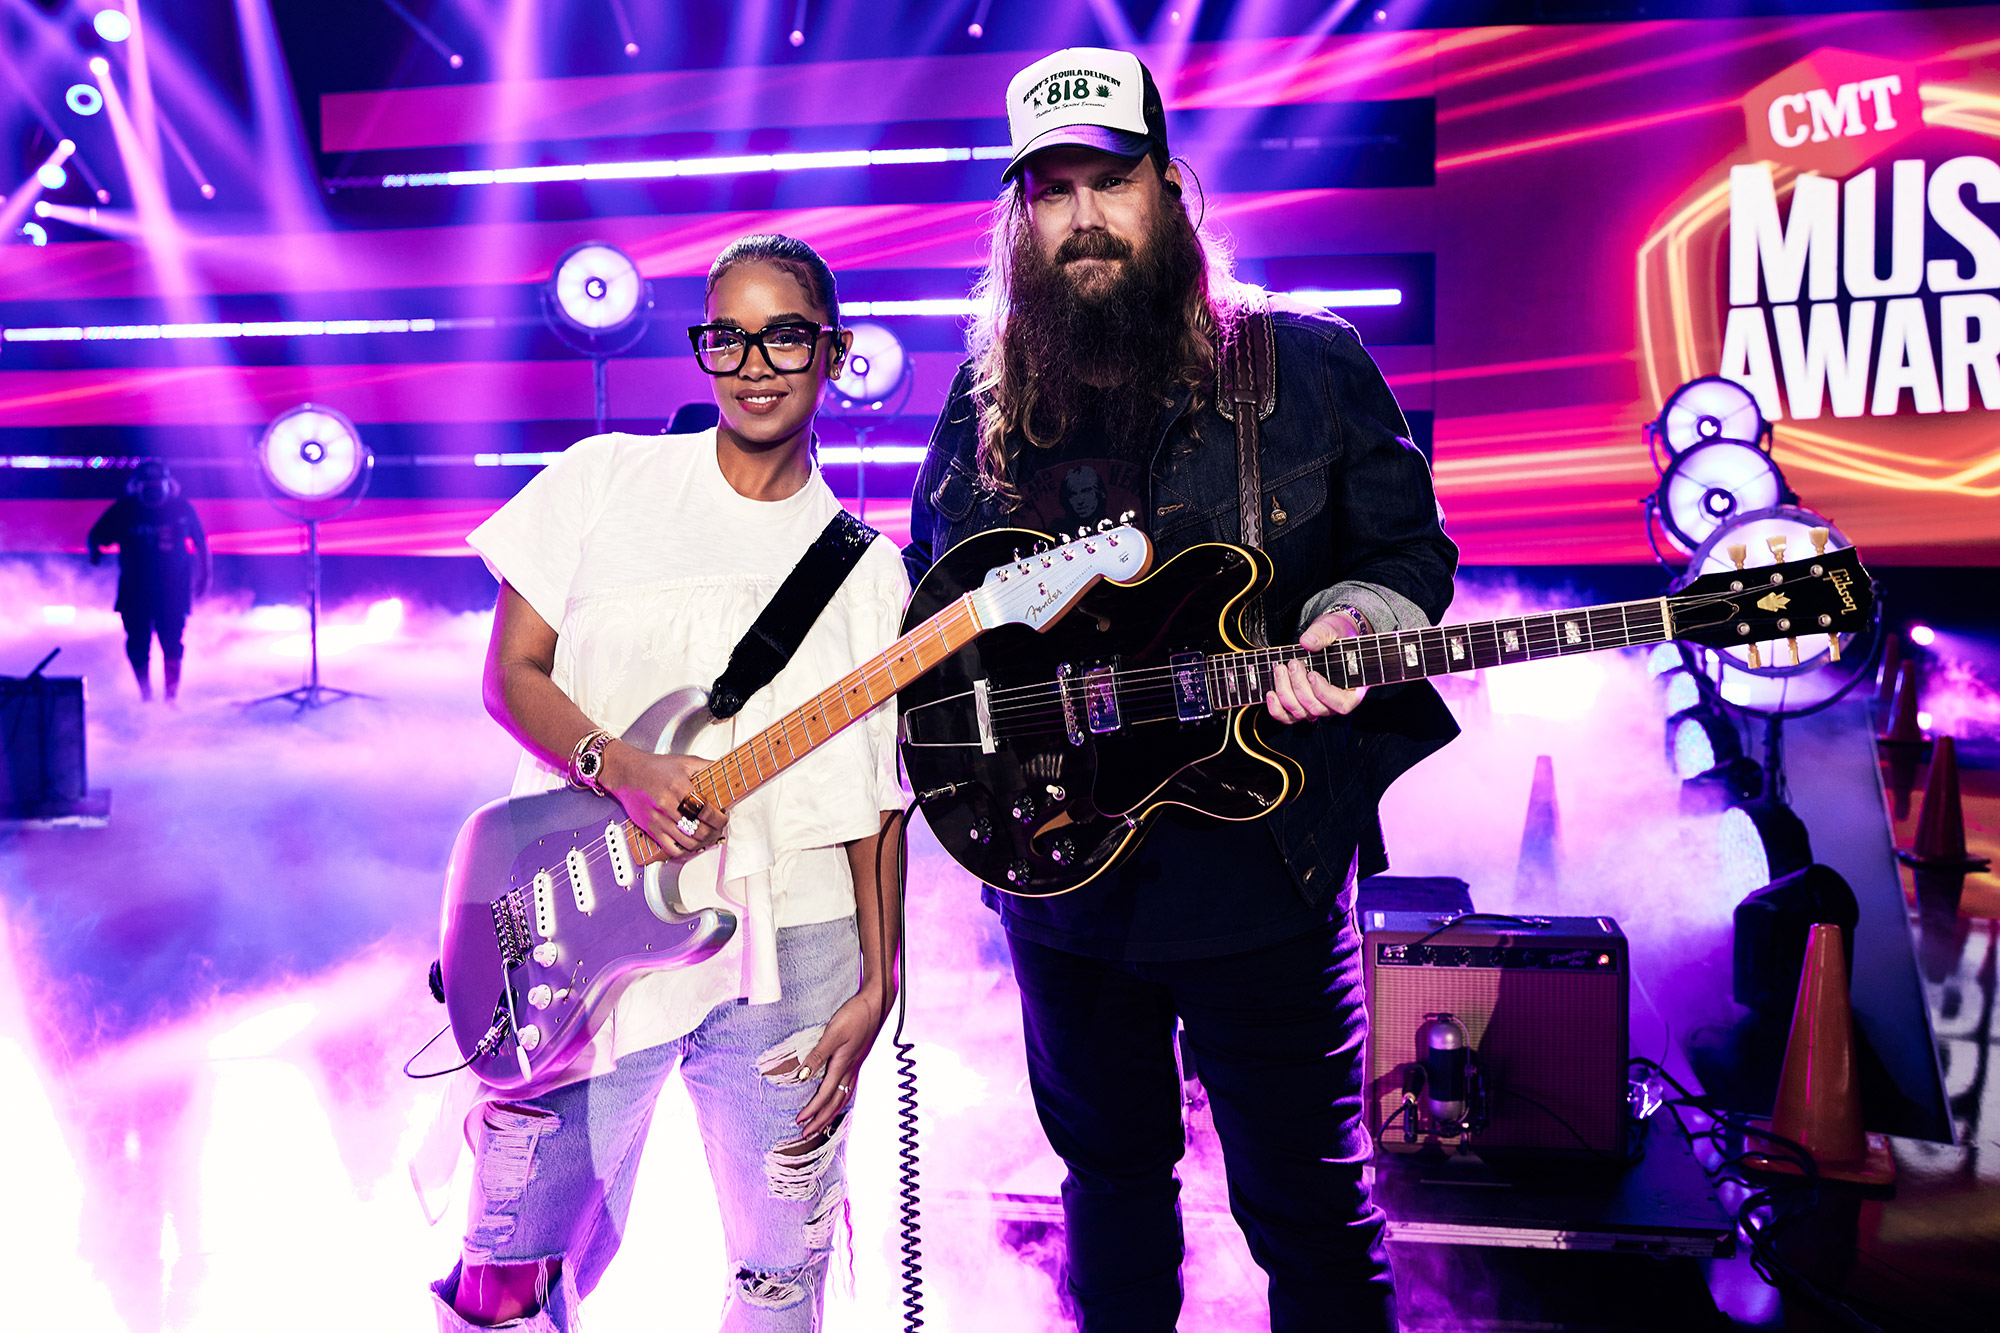 H.E.R. and Chris Stapleton posse during rehearsals for the 2021 CMT Music Awards on June 08, 2021 in Nashville, Tennessee